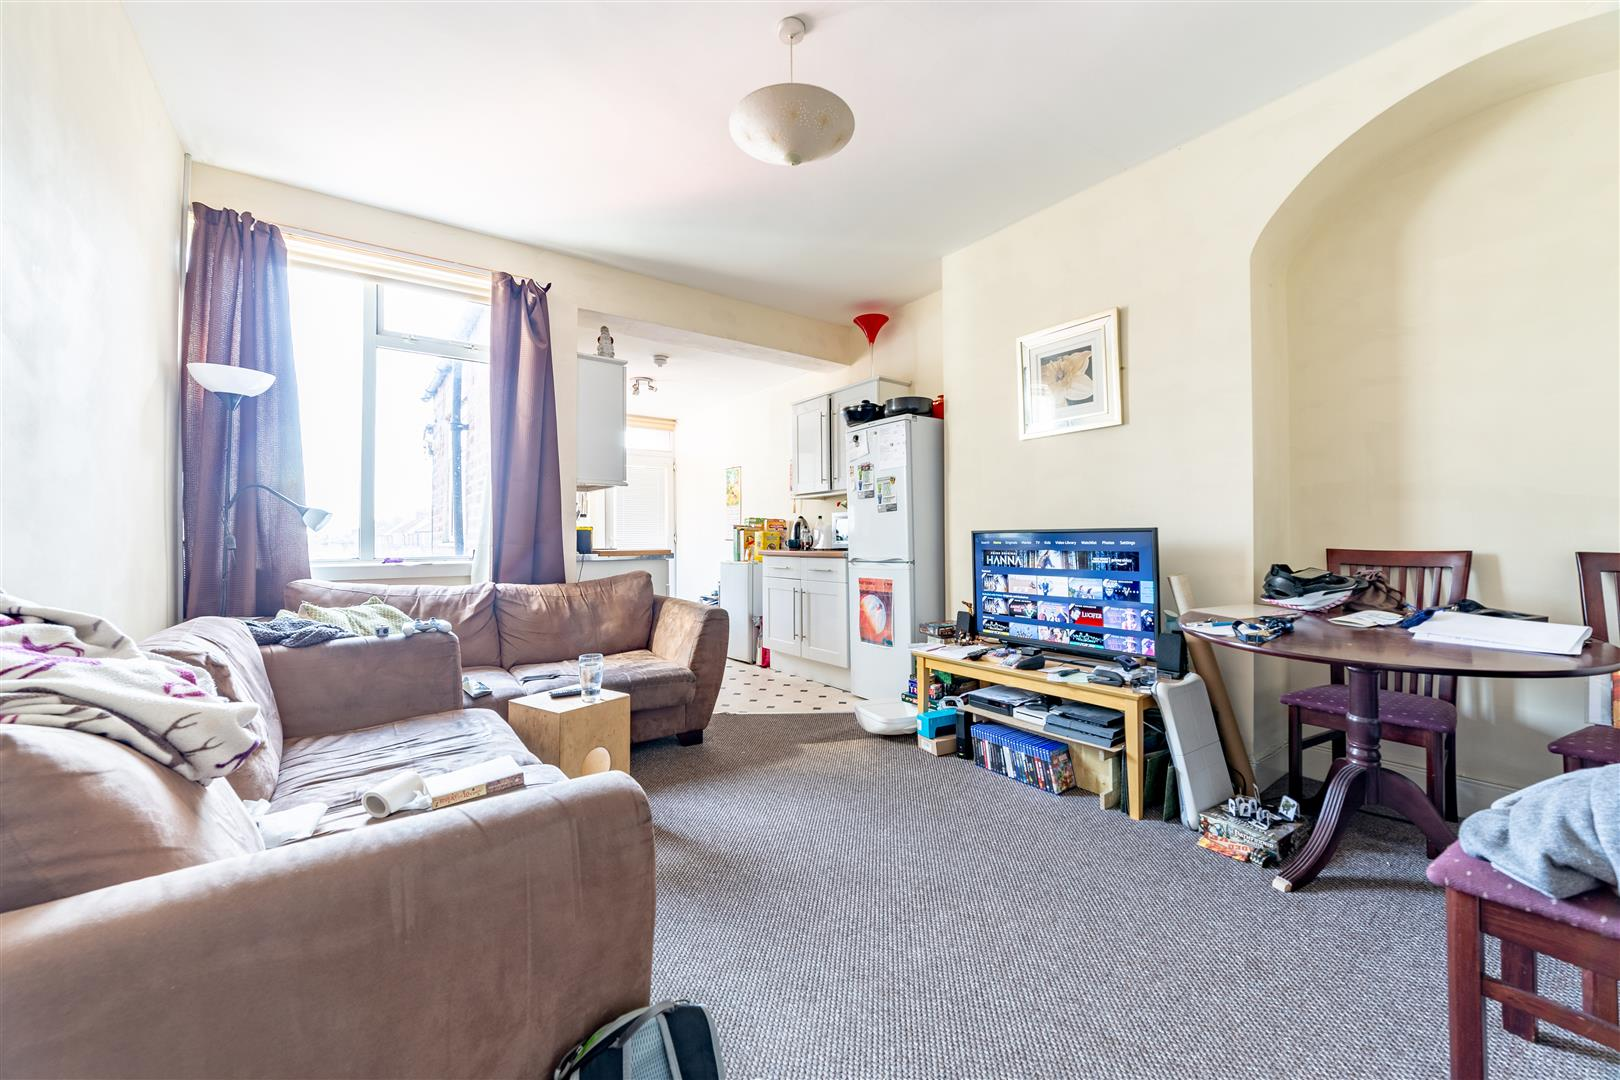 4 bed maisonette for sale in High Heaton, NE7 7DR, NE7